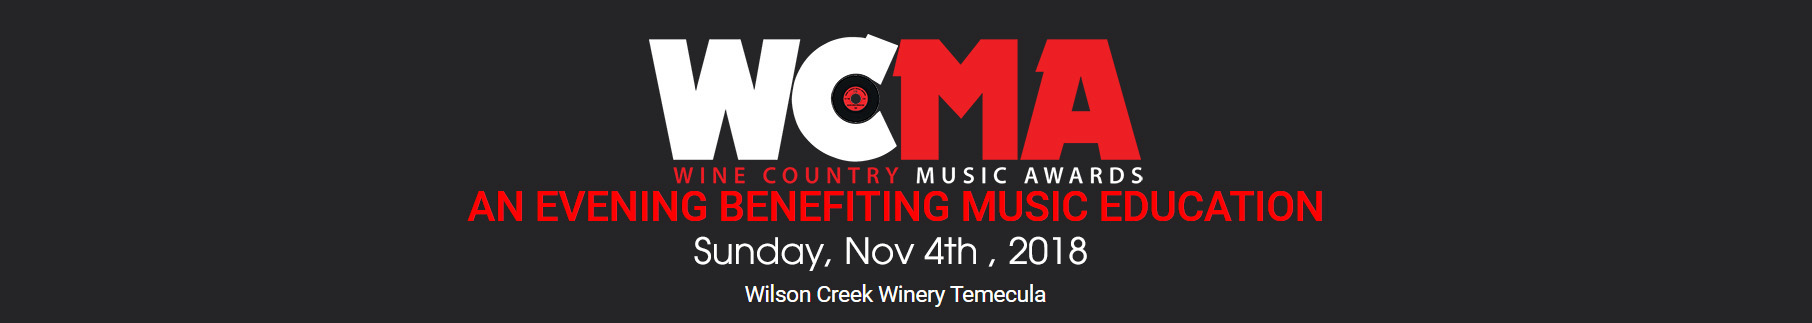 Wine Country Music Awards